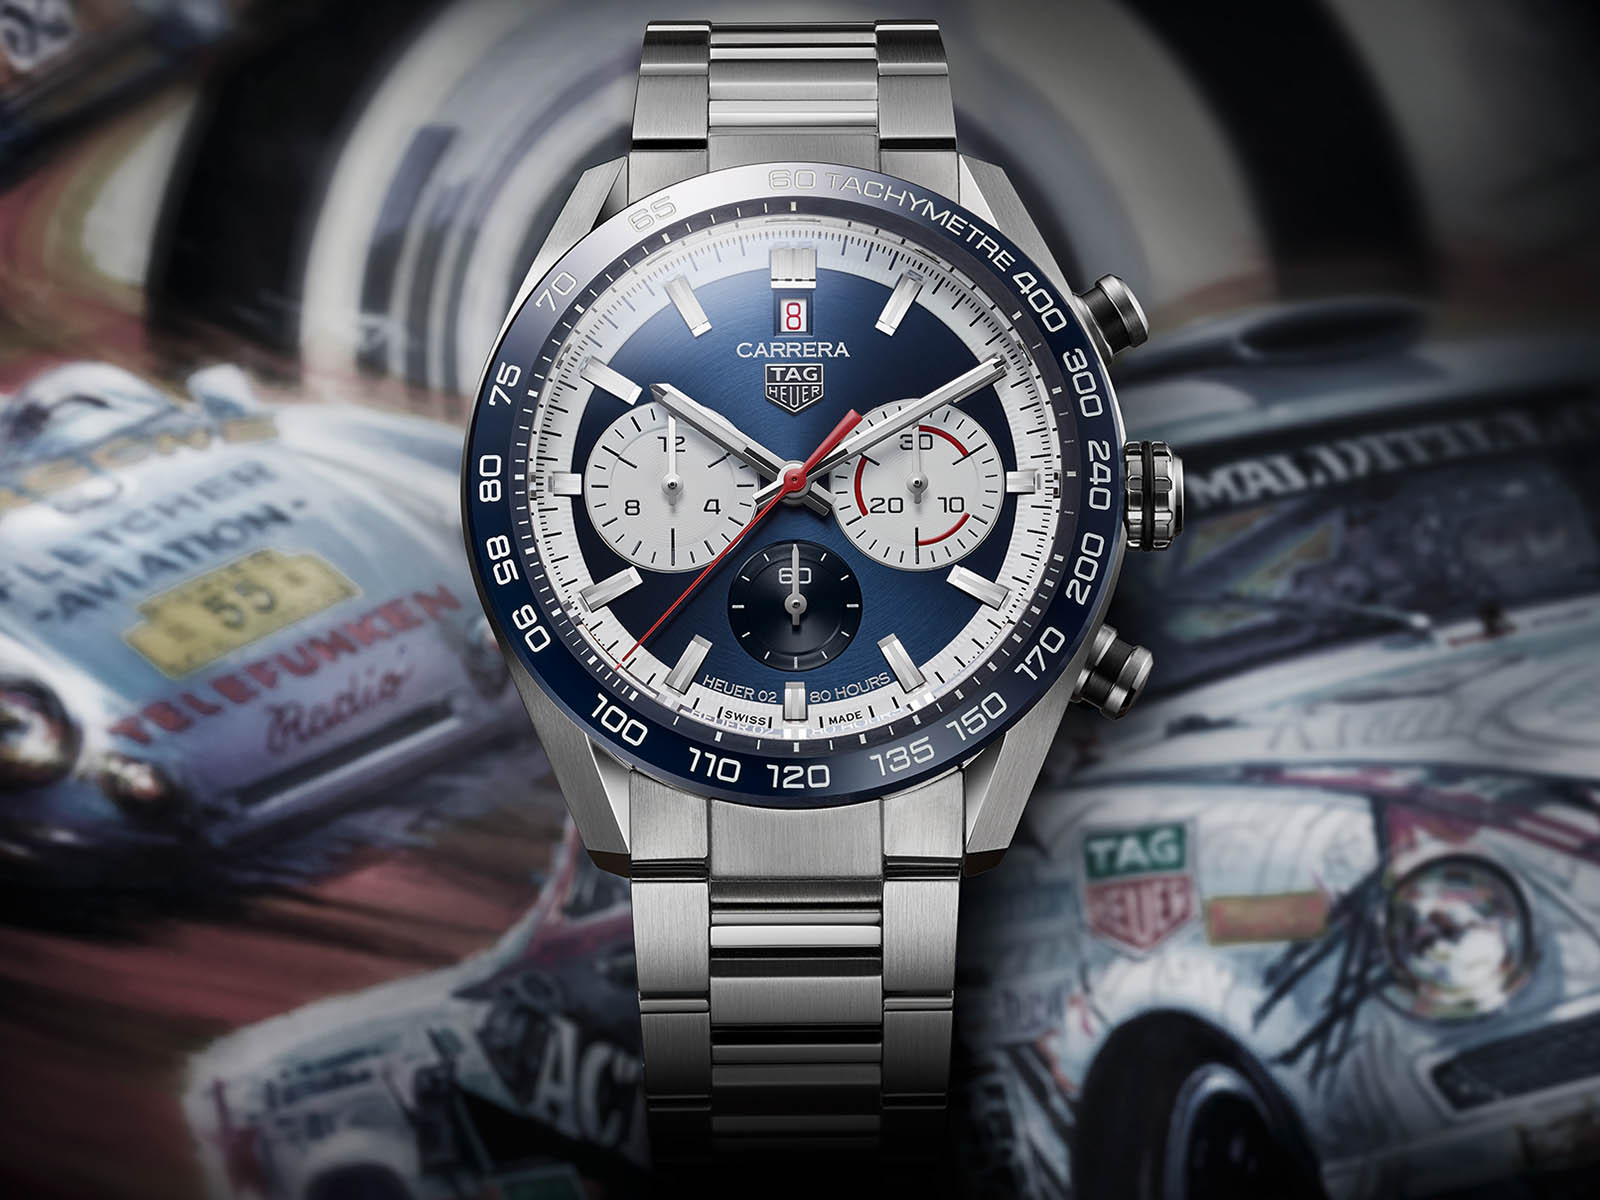 cbn2a1e-ba0643-tag-heuer-carrera-sport-chronograph-160-years-special-edition-2.jpg